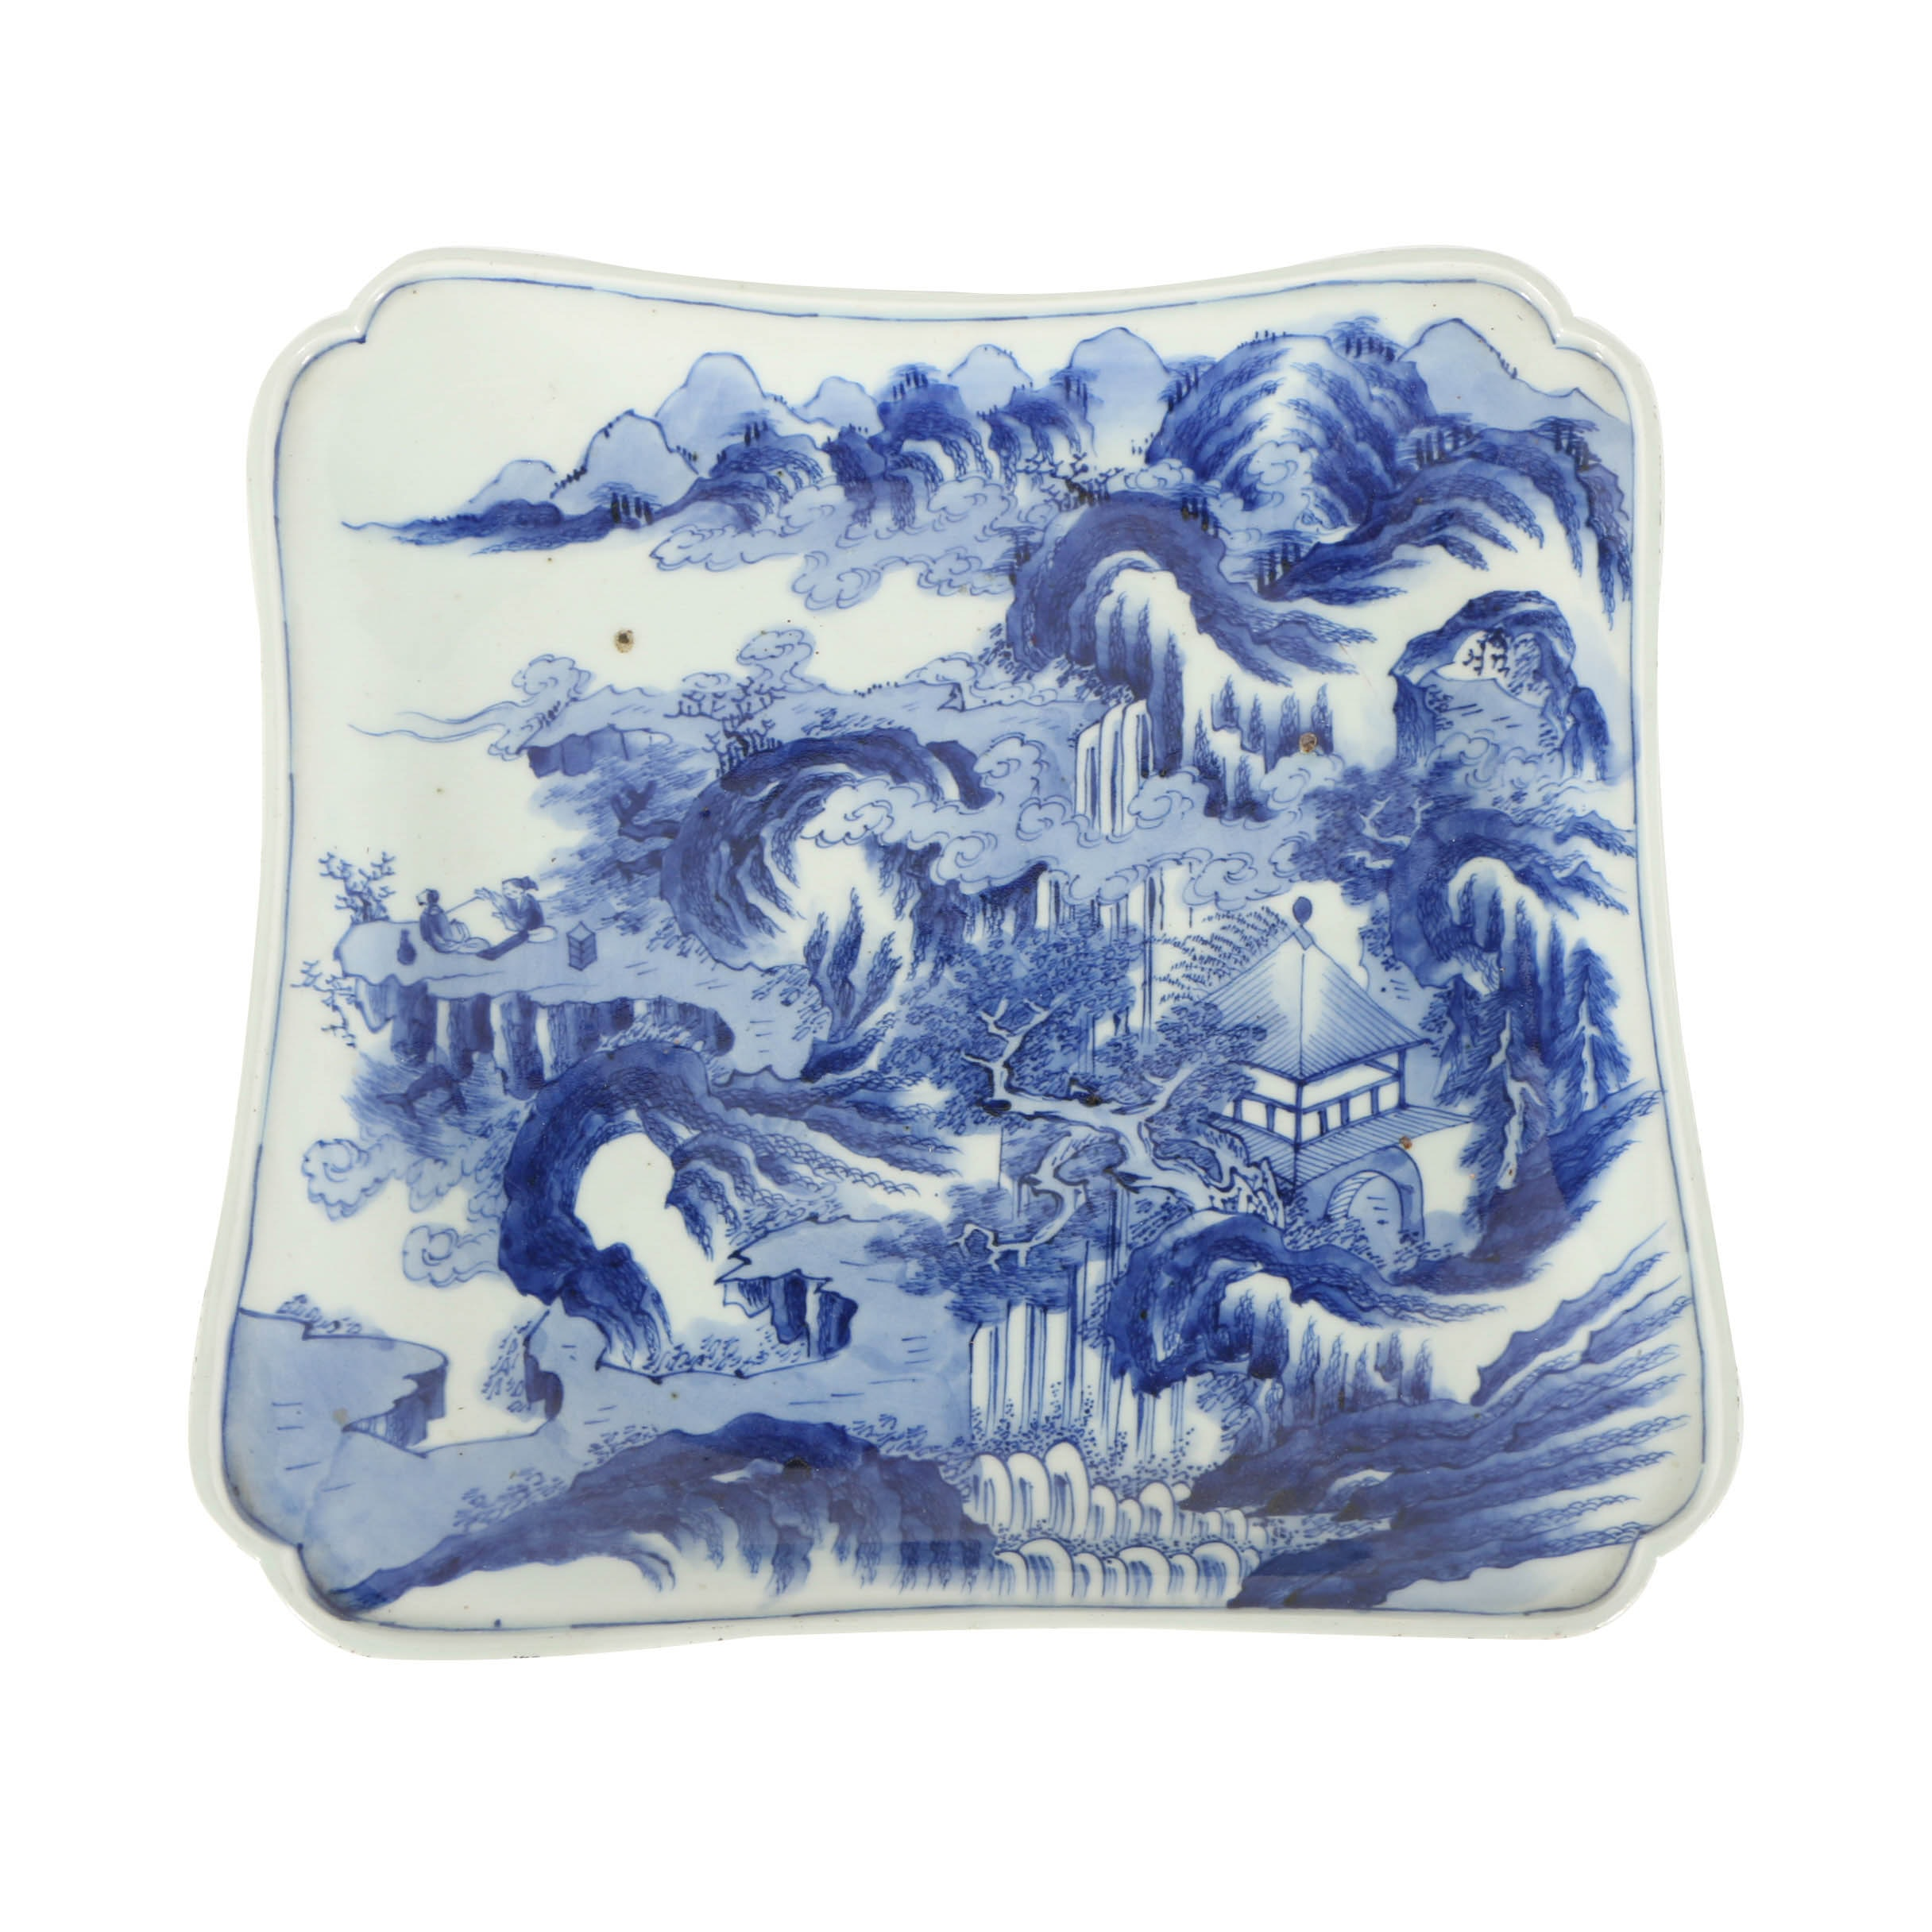 Japanese Decorative Platter